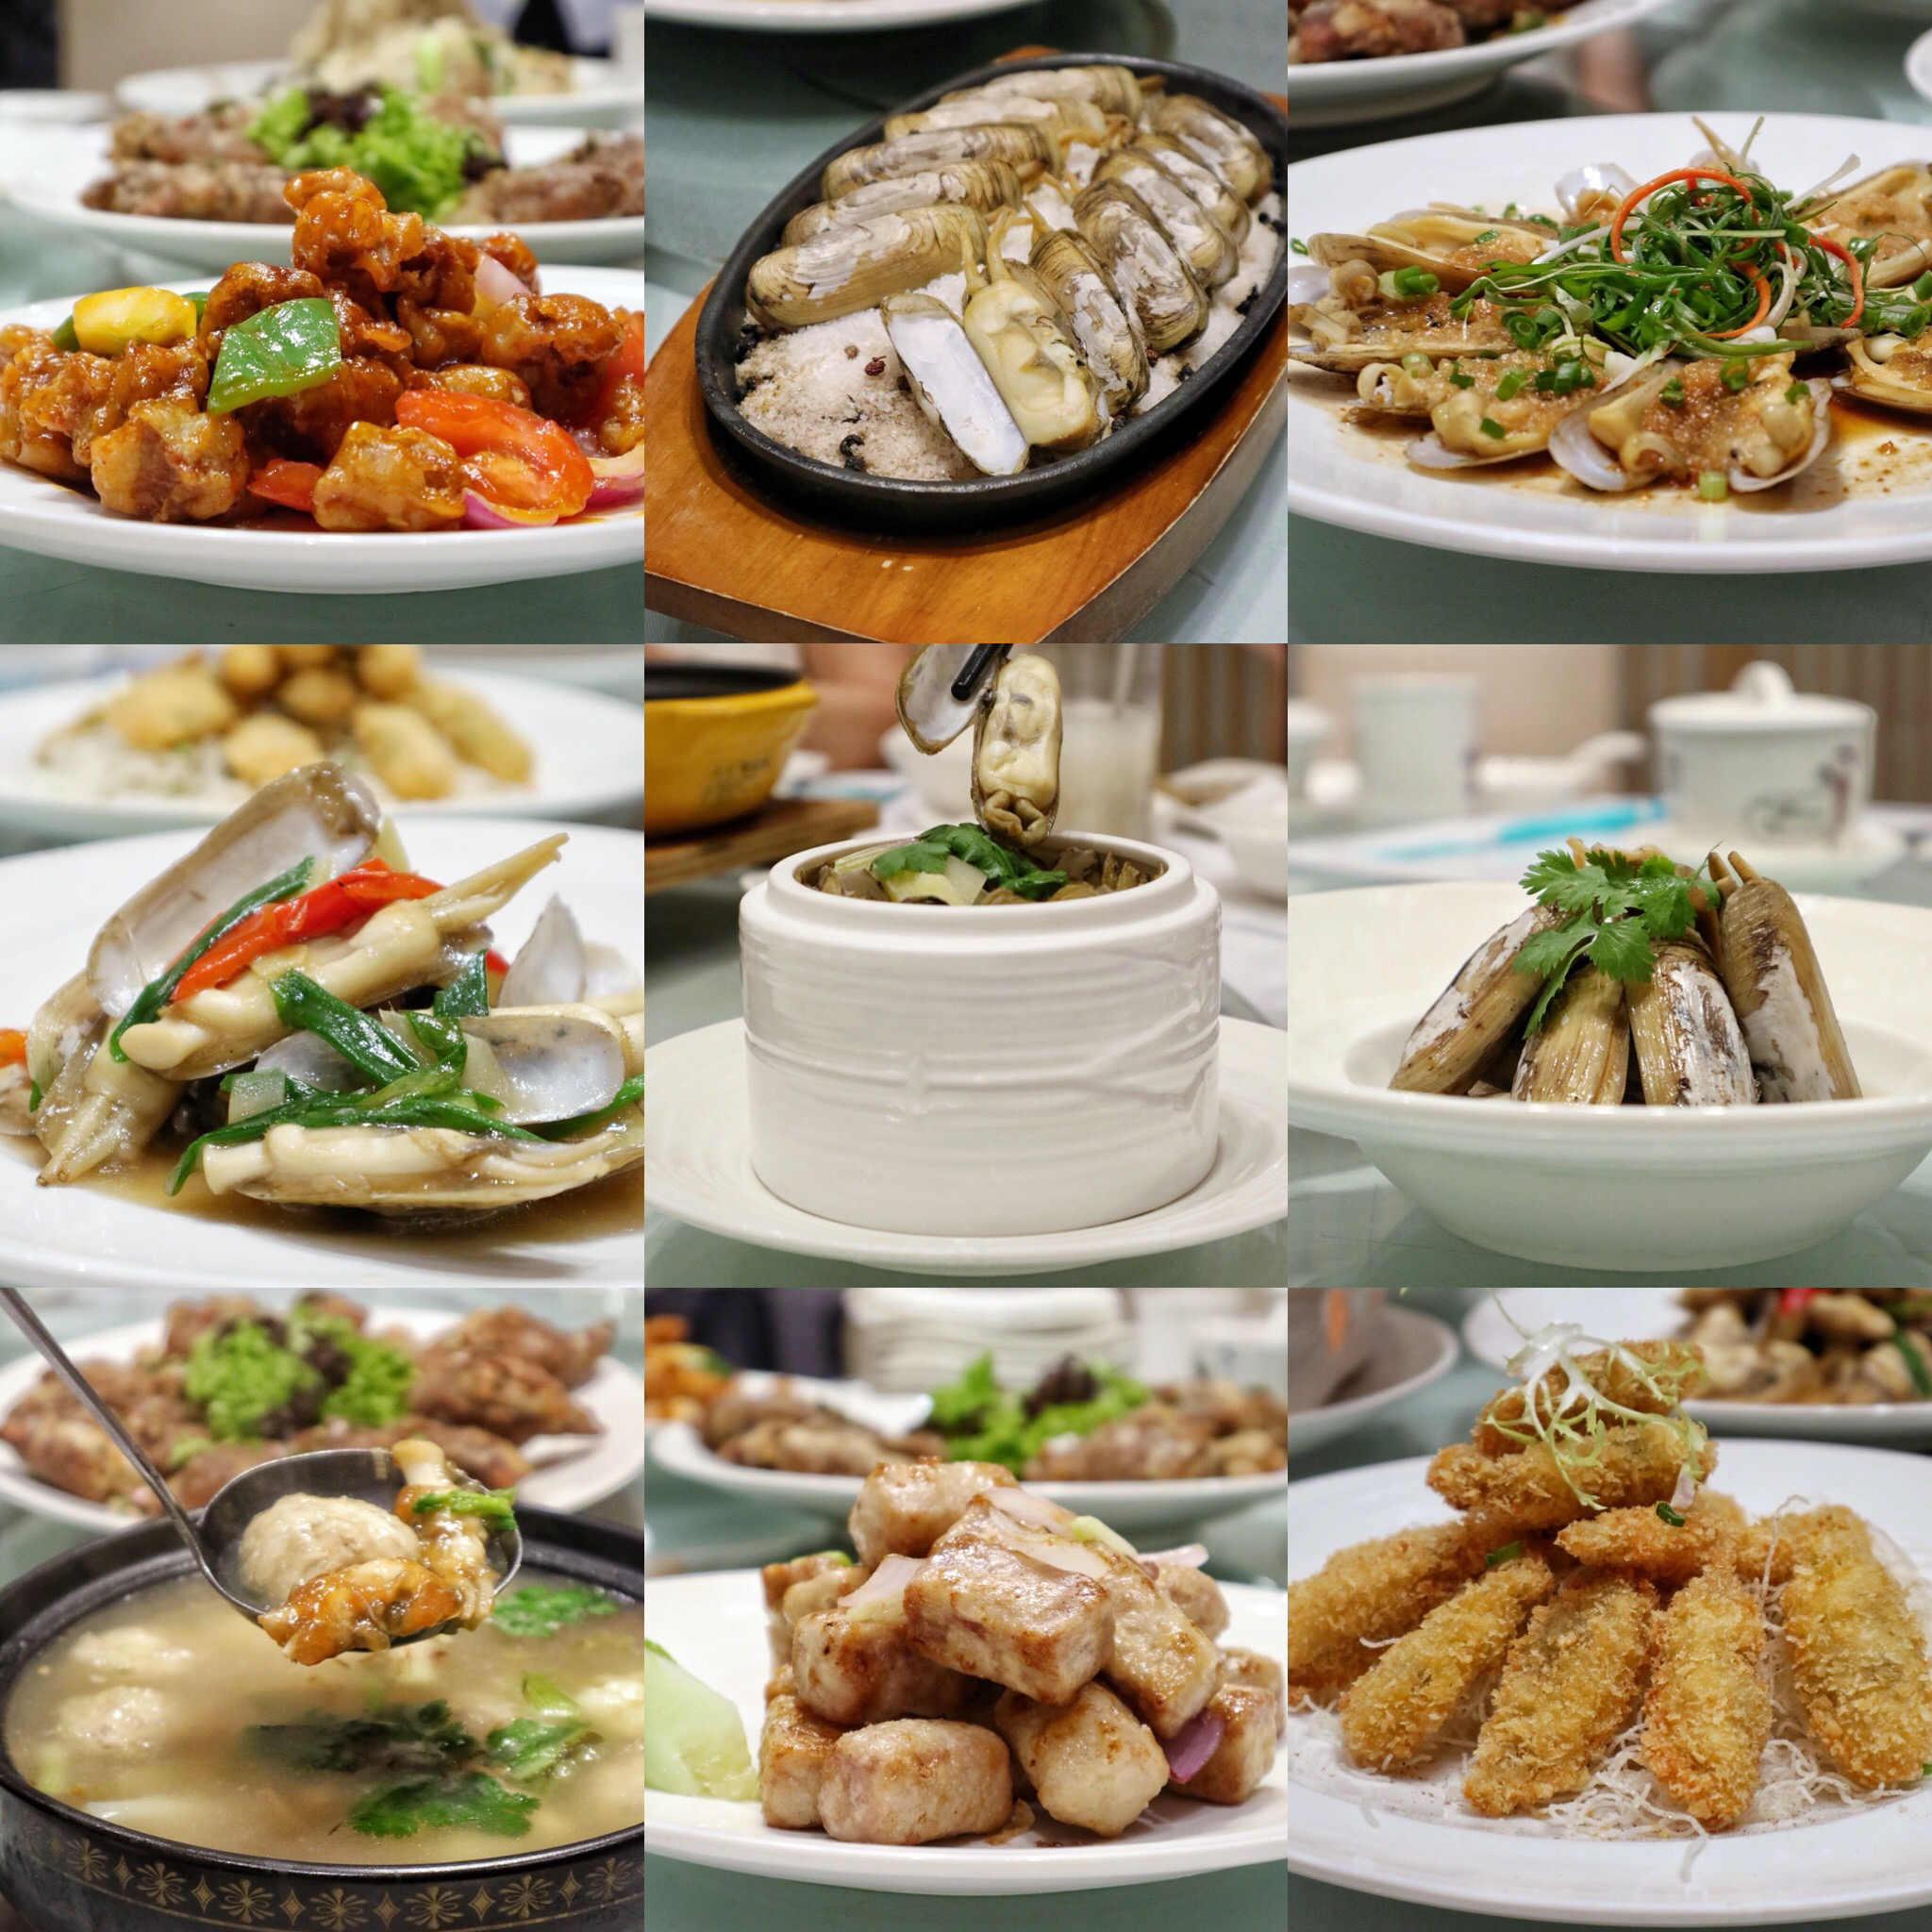 Putien: Unveils 8 New Clam-licious Dishes In Conjunction with Duo Tou Clam Season